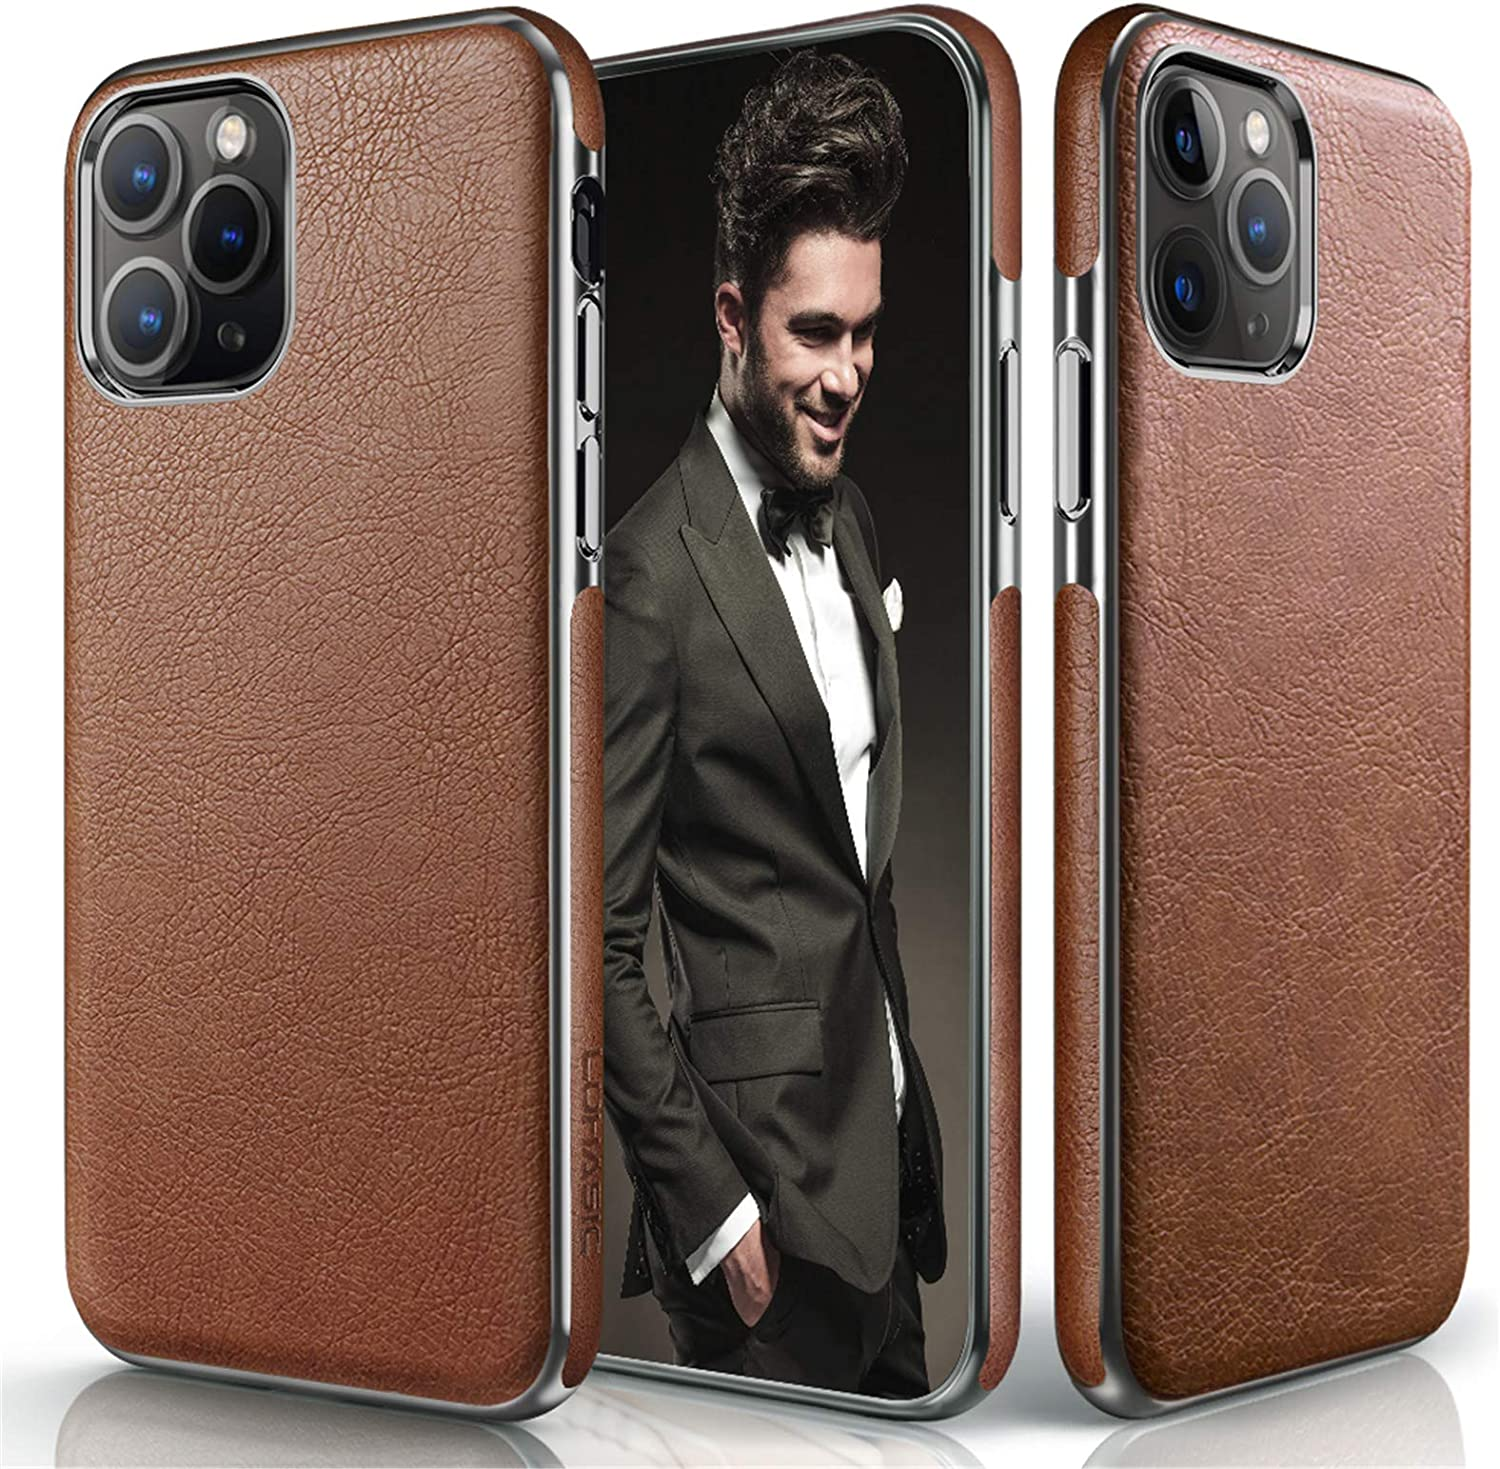 LOHASIC iPhone 11 Pro Case, Luxury Premium Leather Slim Thin Business Style Elegant Non Slip Soft Grip Flexible Shockproof Protective Cases Compatible with Apple iPhone 11 Pro 5.8 inch 2019 - Brown